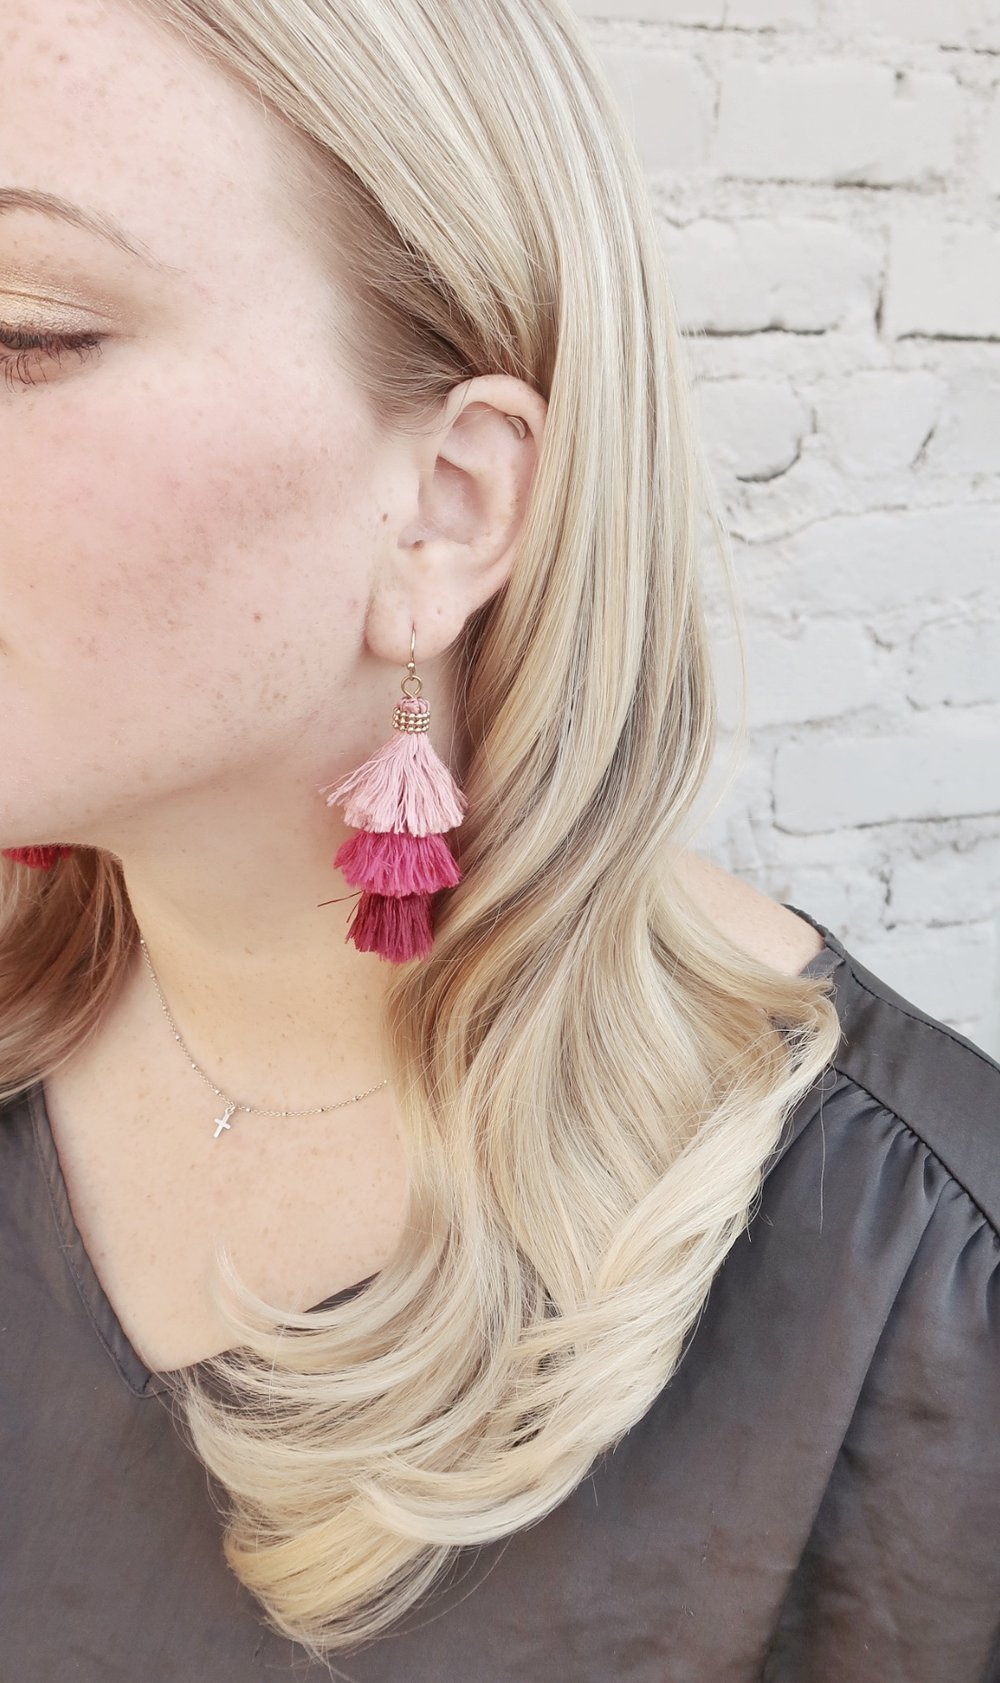 For added Drama - Add a deep part, tuck behind ear on the side with less hair and wear a pair of gorgeous earrings